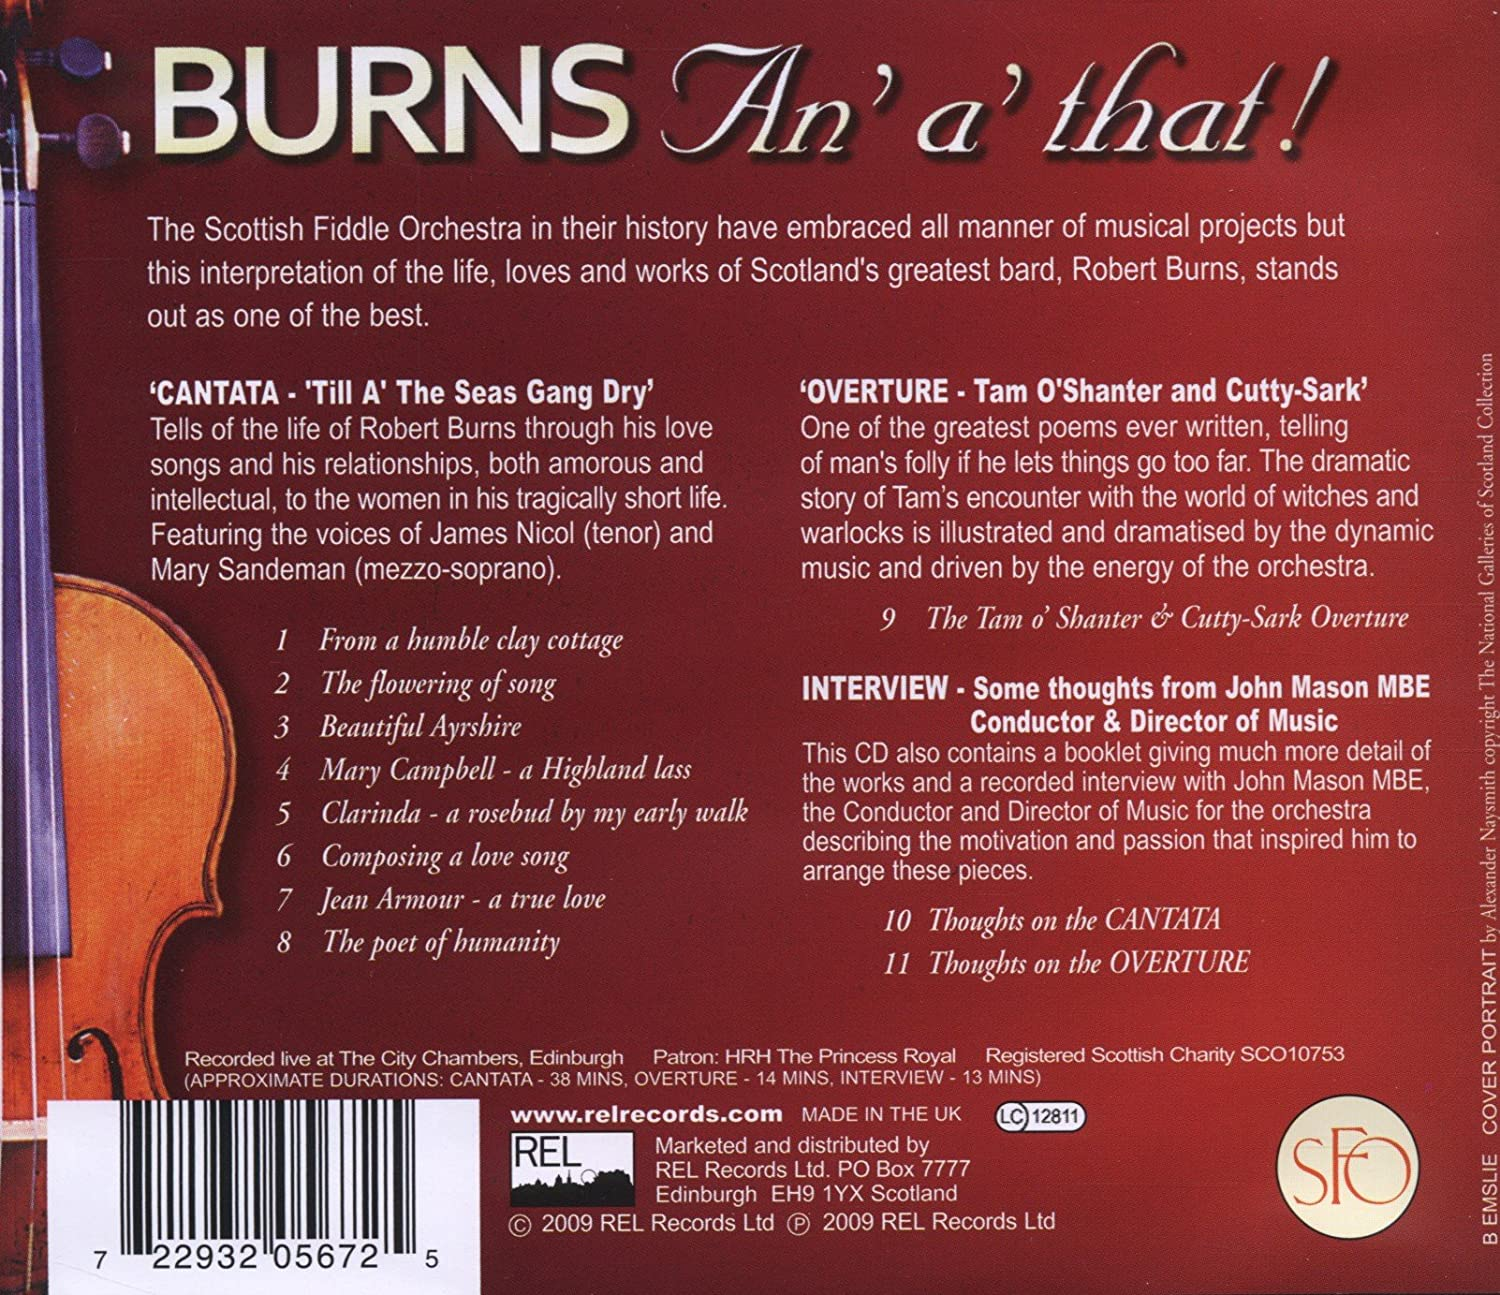 the Scottish Fiddle Orchestra - Burns An' A' That! - Amazon com Music